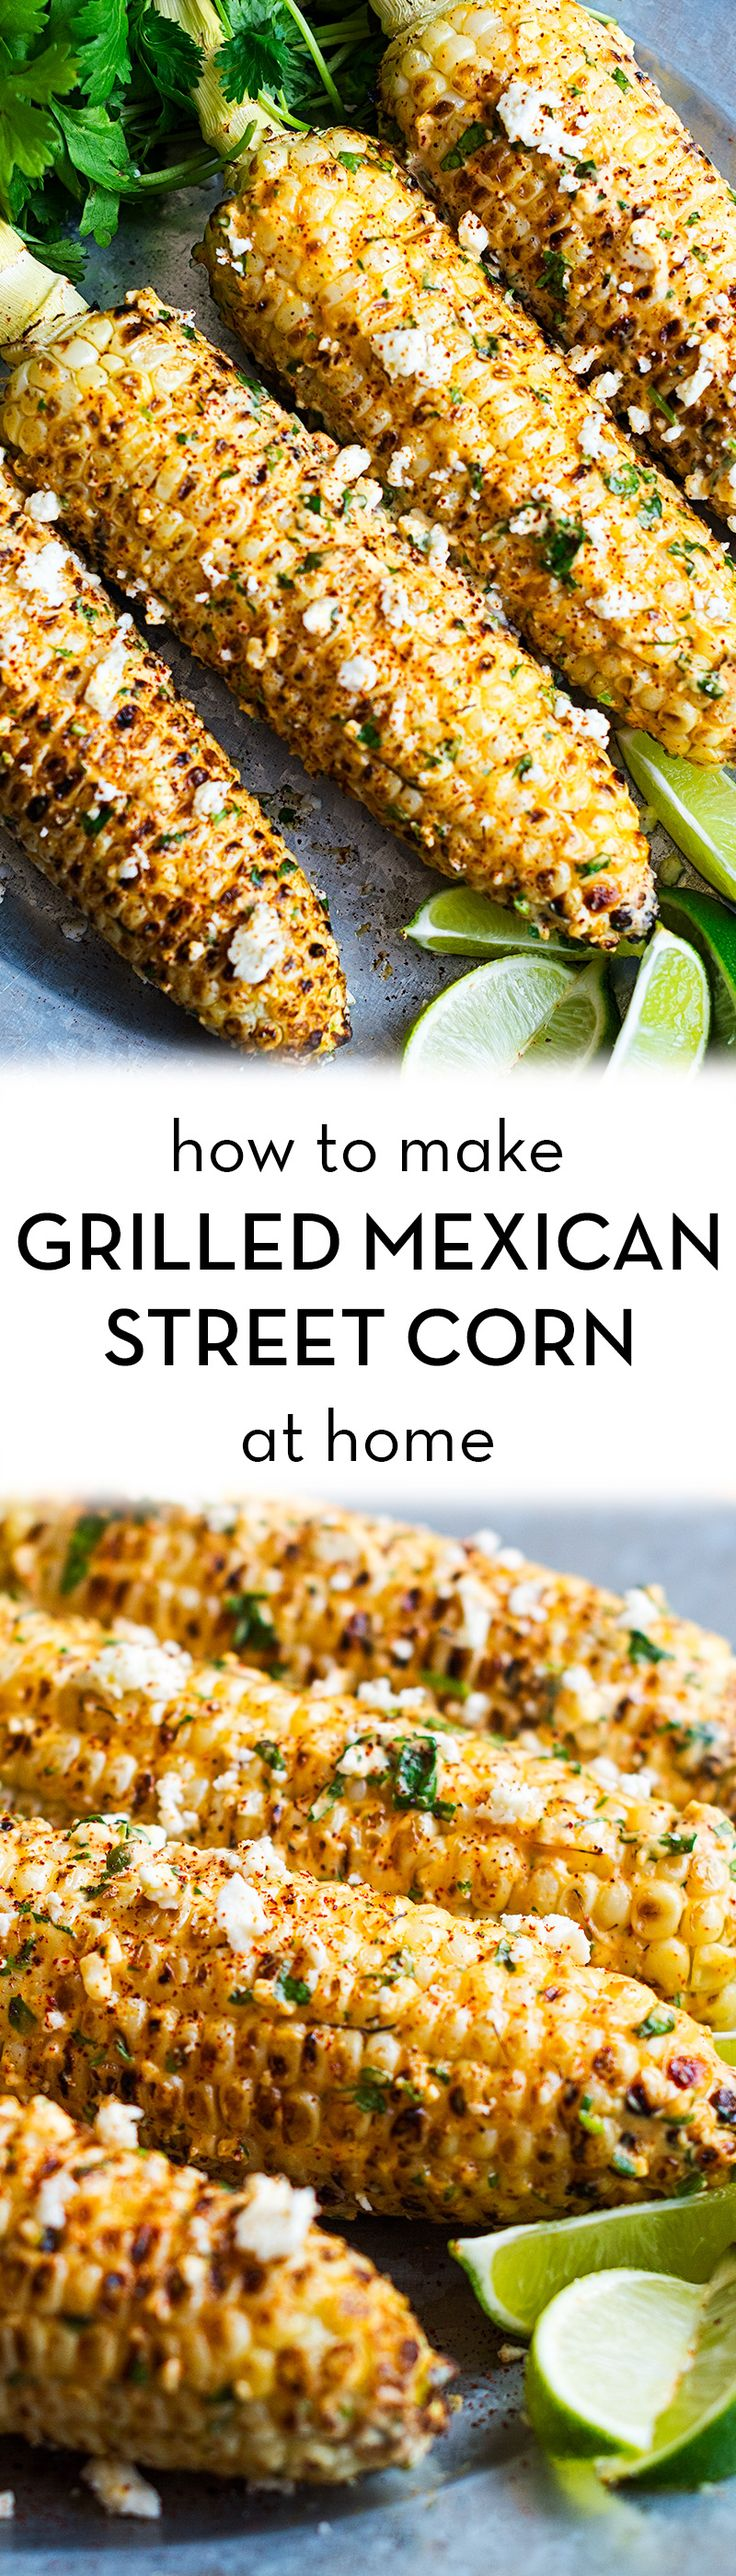 Do you like grilled corn on the cob? You should try this sensational grilled Mexican street corn. @shamrockfarms [ad]